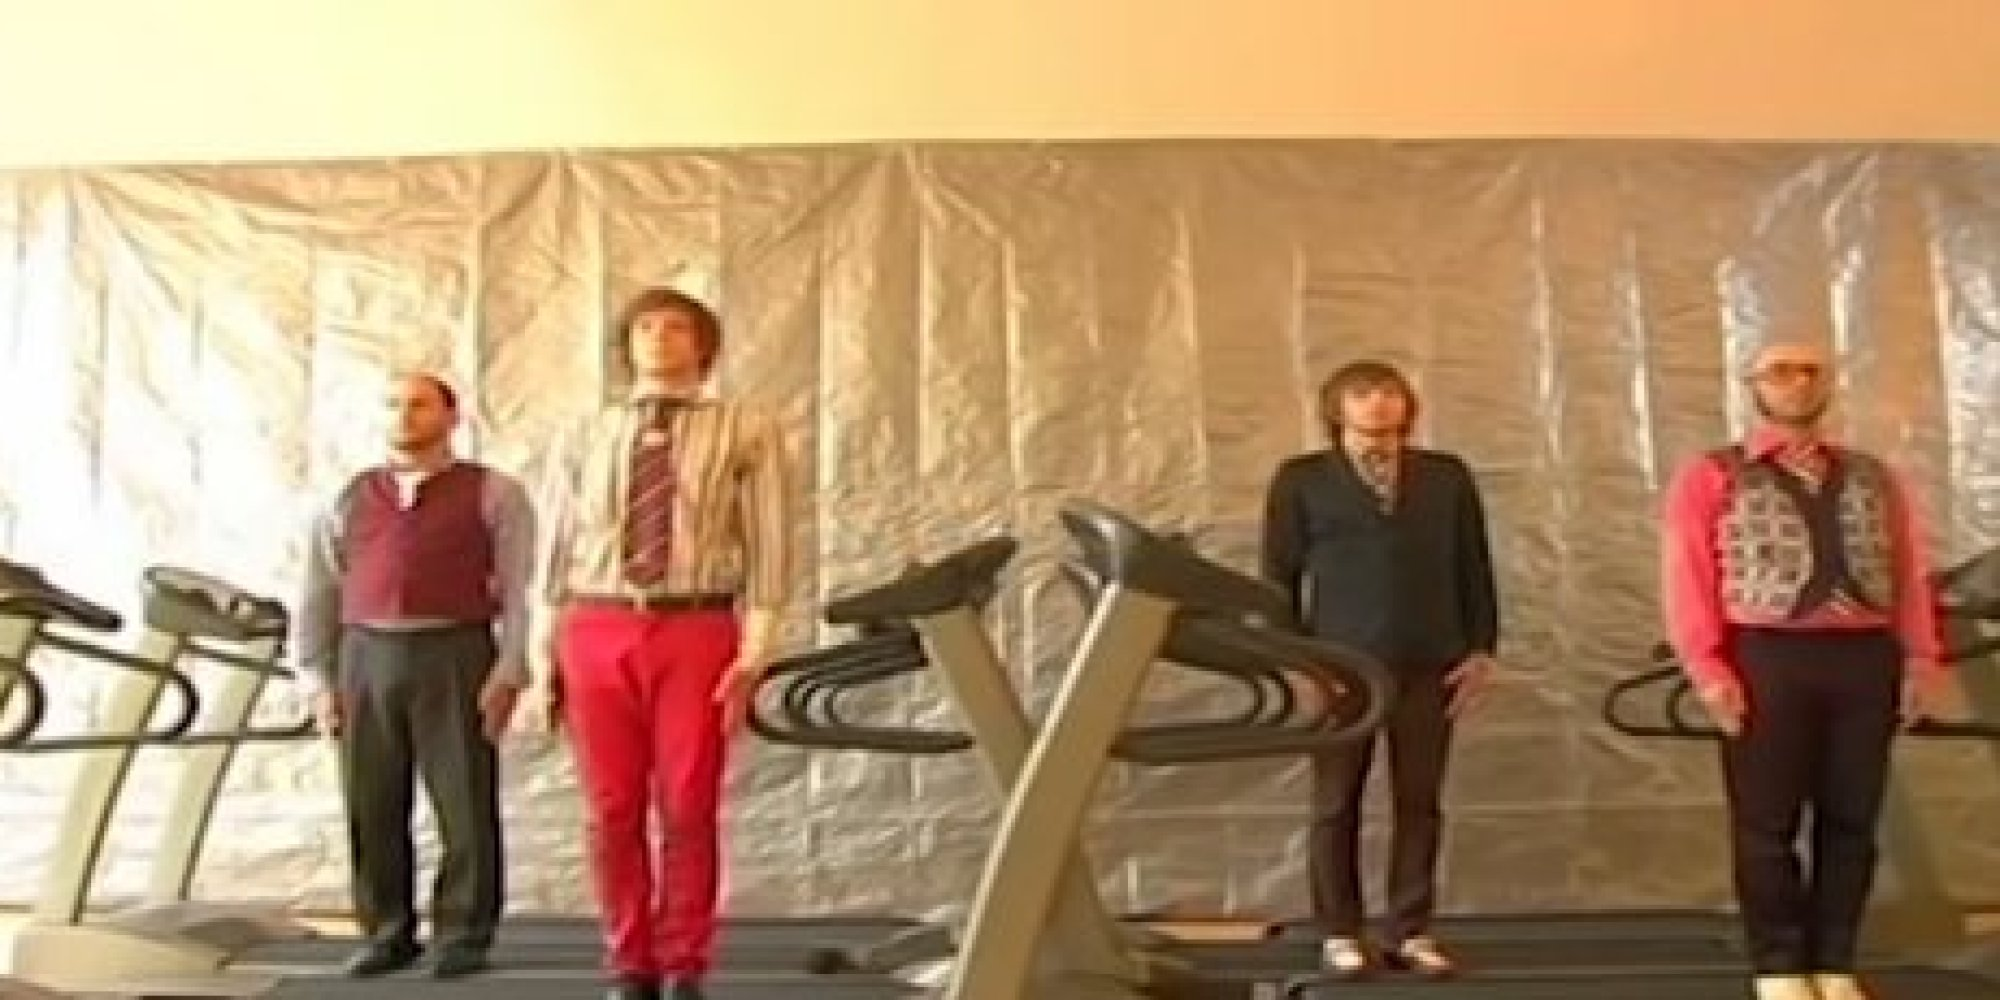 WATCH: OK Go's 'Here It Goes Again' Music Video - Without The Mus...